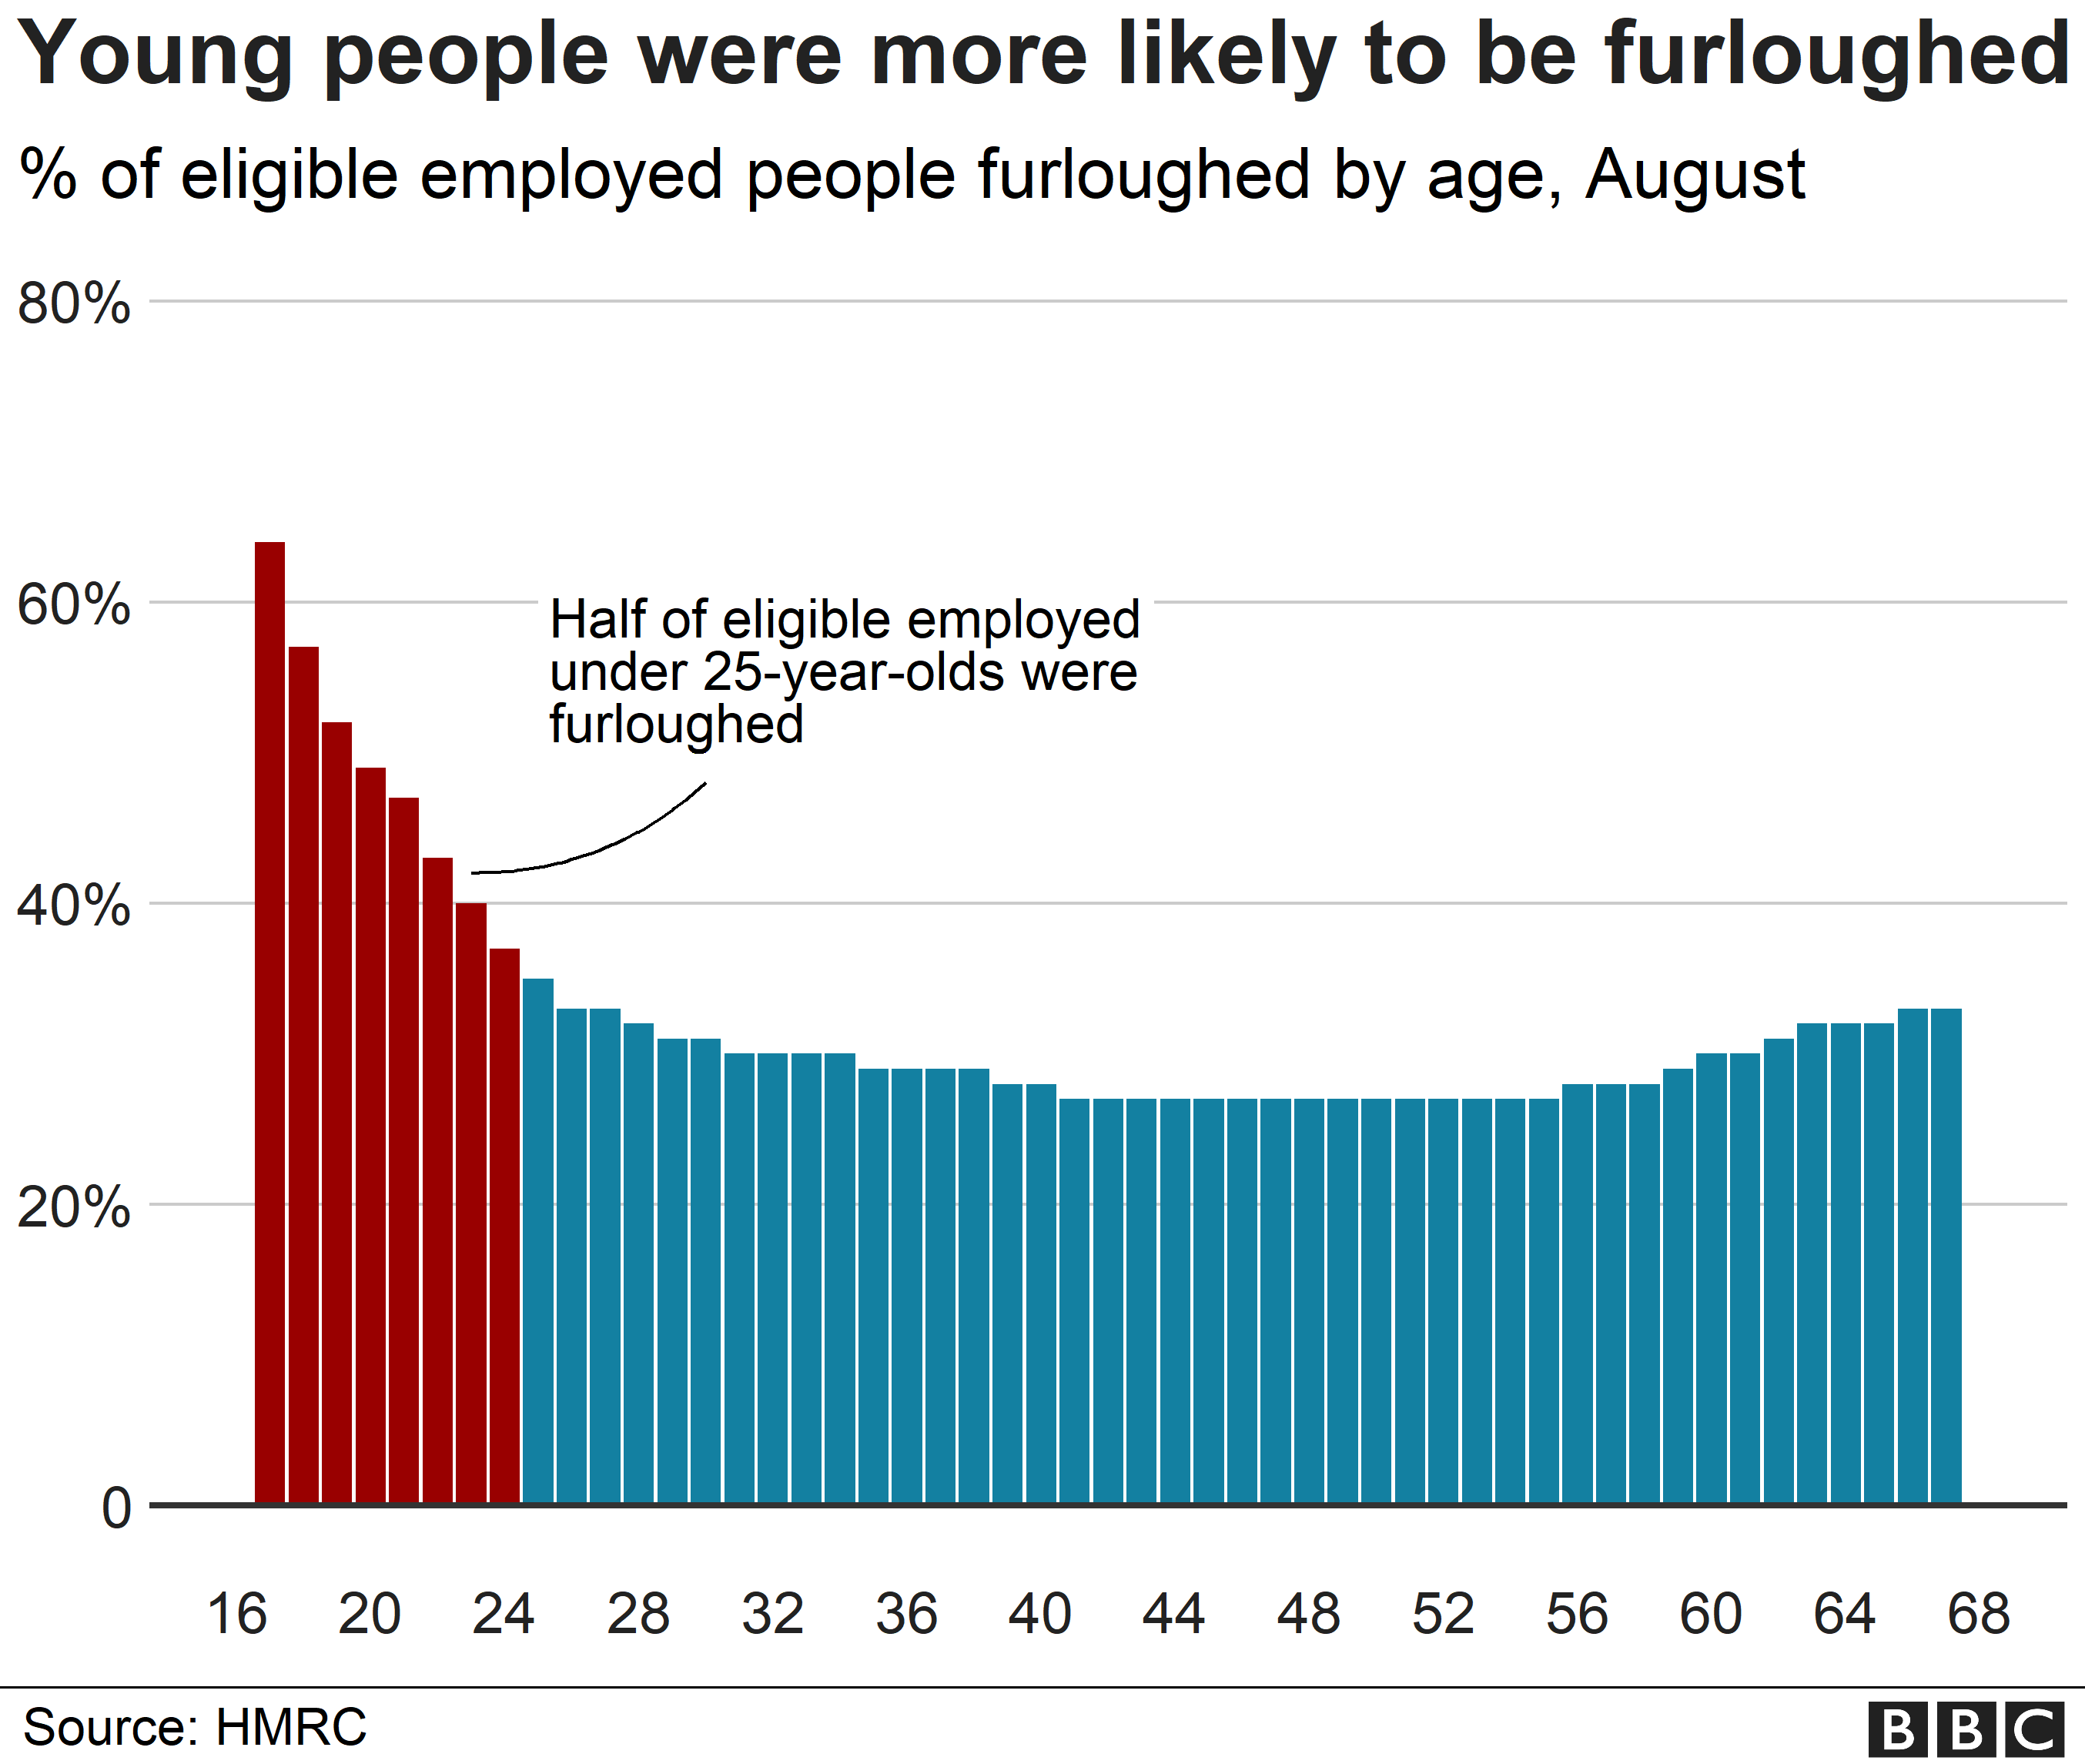 Employment Seven Ways The Young Have Been Hit By Covid Bbc News